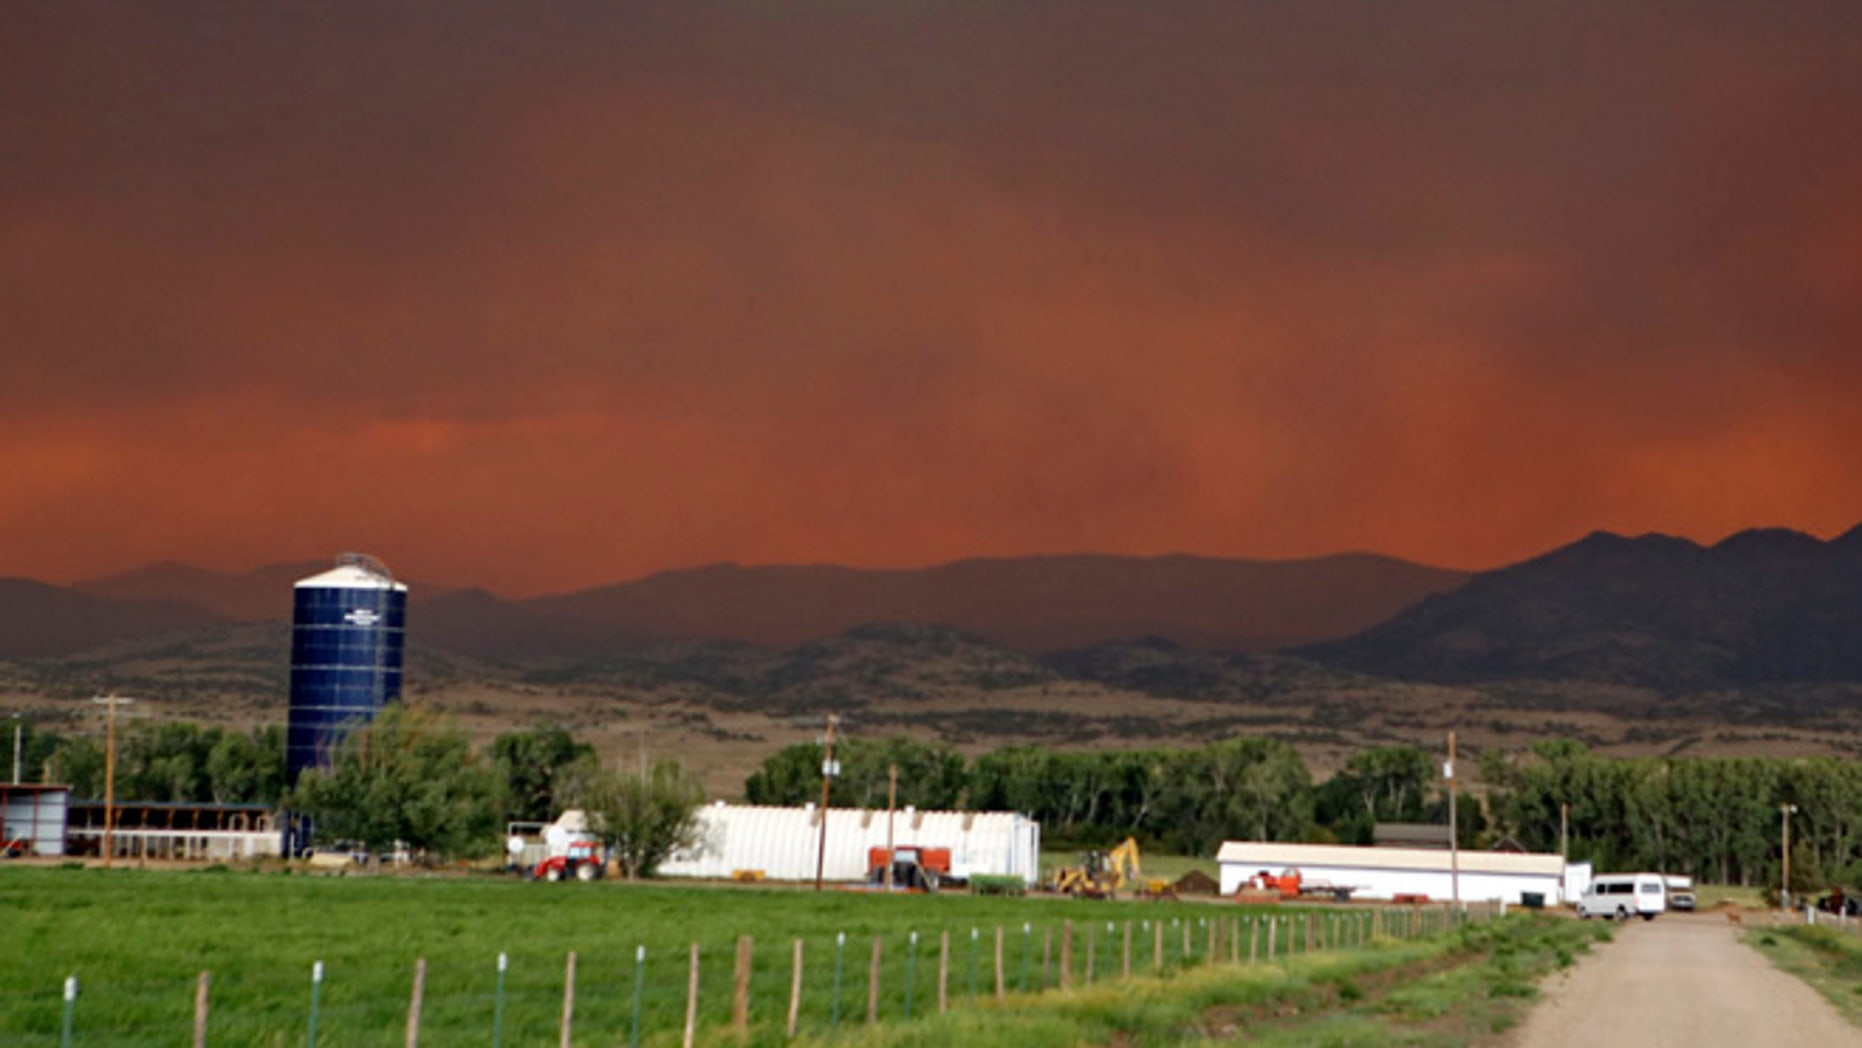 June 21, 2013: The smoke in the sky over a ranch near South Fork, Colo., glows red from a wildfire that is threatening the town. South Fork was evacuated Friday as the fire approaches from the west.